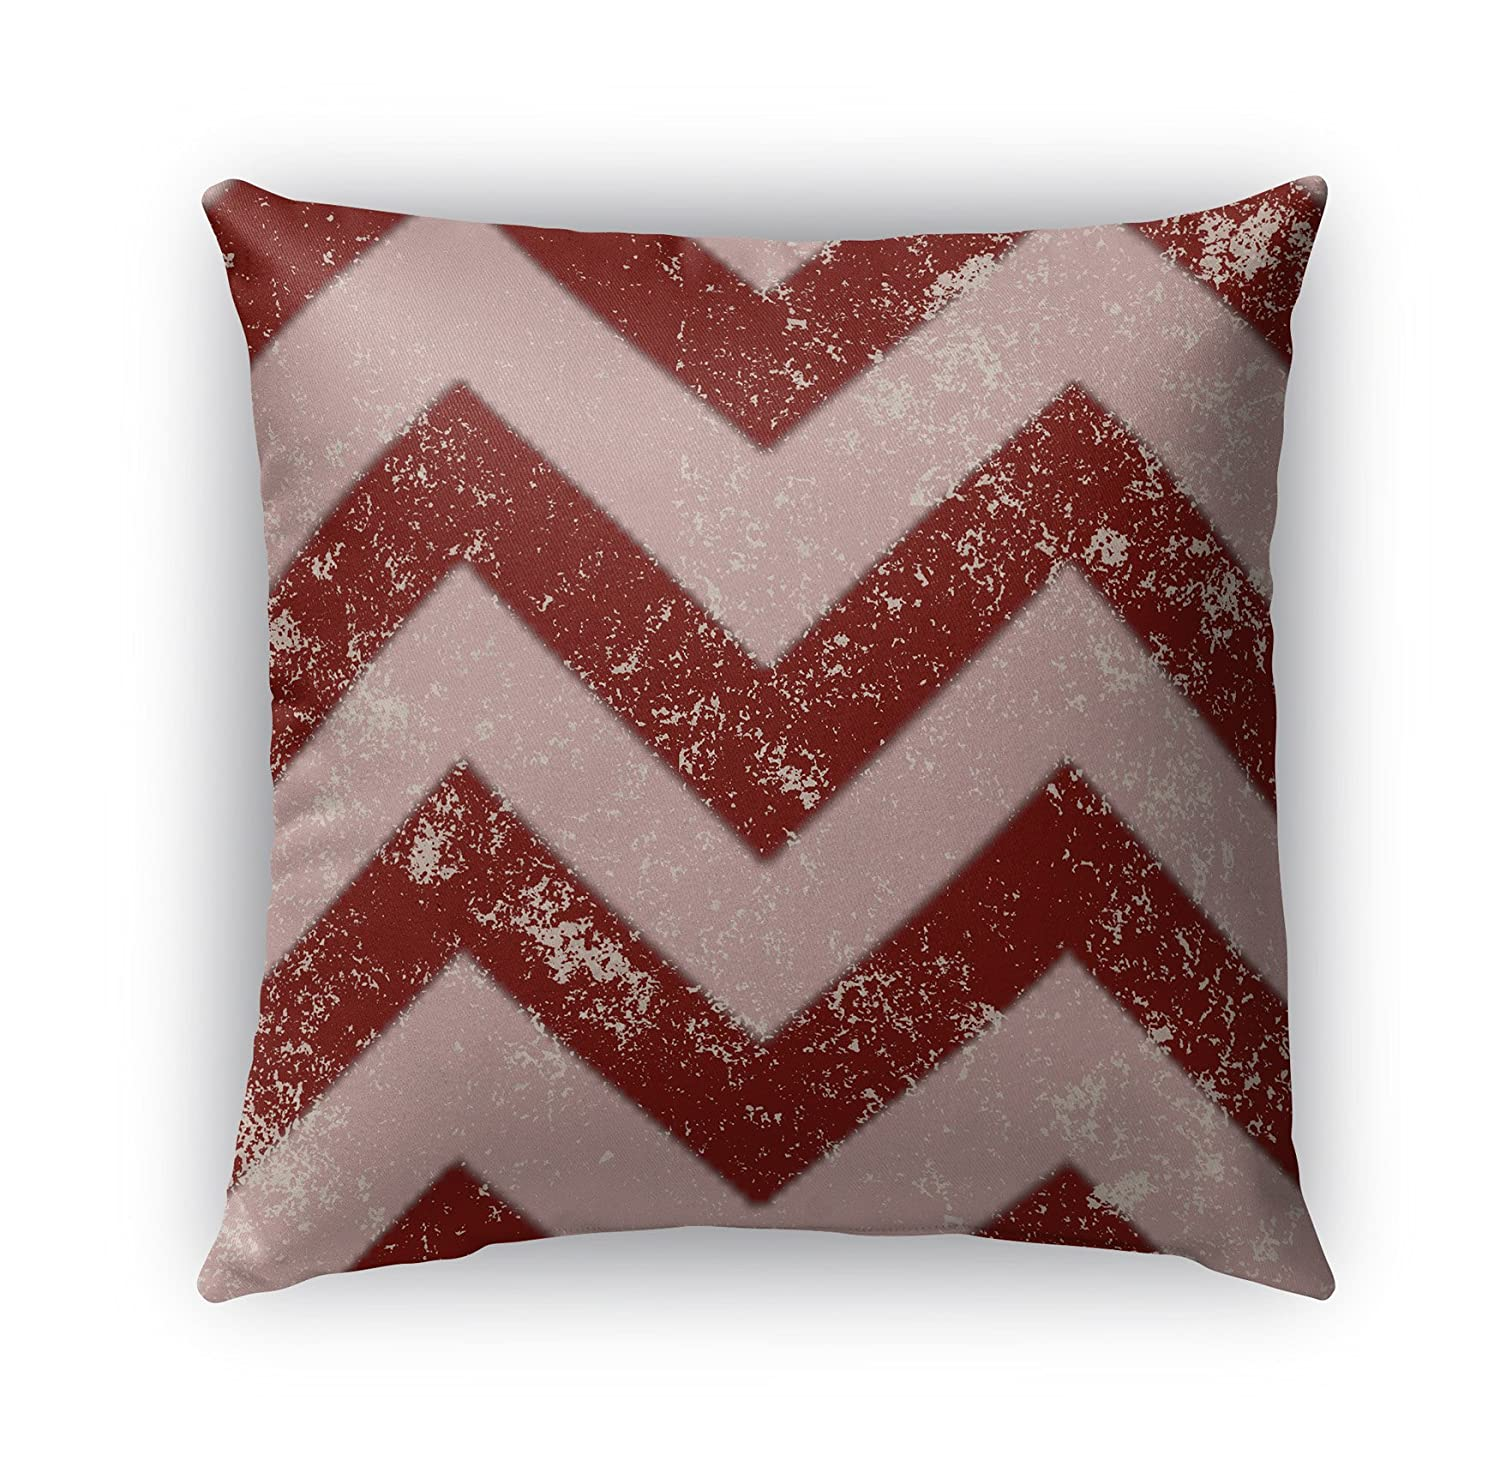 KAVKA Designs Candy Cane Chevron Indoor-Outdoor Pillow, - PLUAVC2503OD18 Size: 18X18X6 - Red//Pink